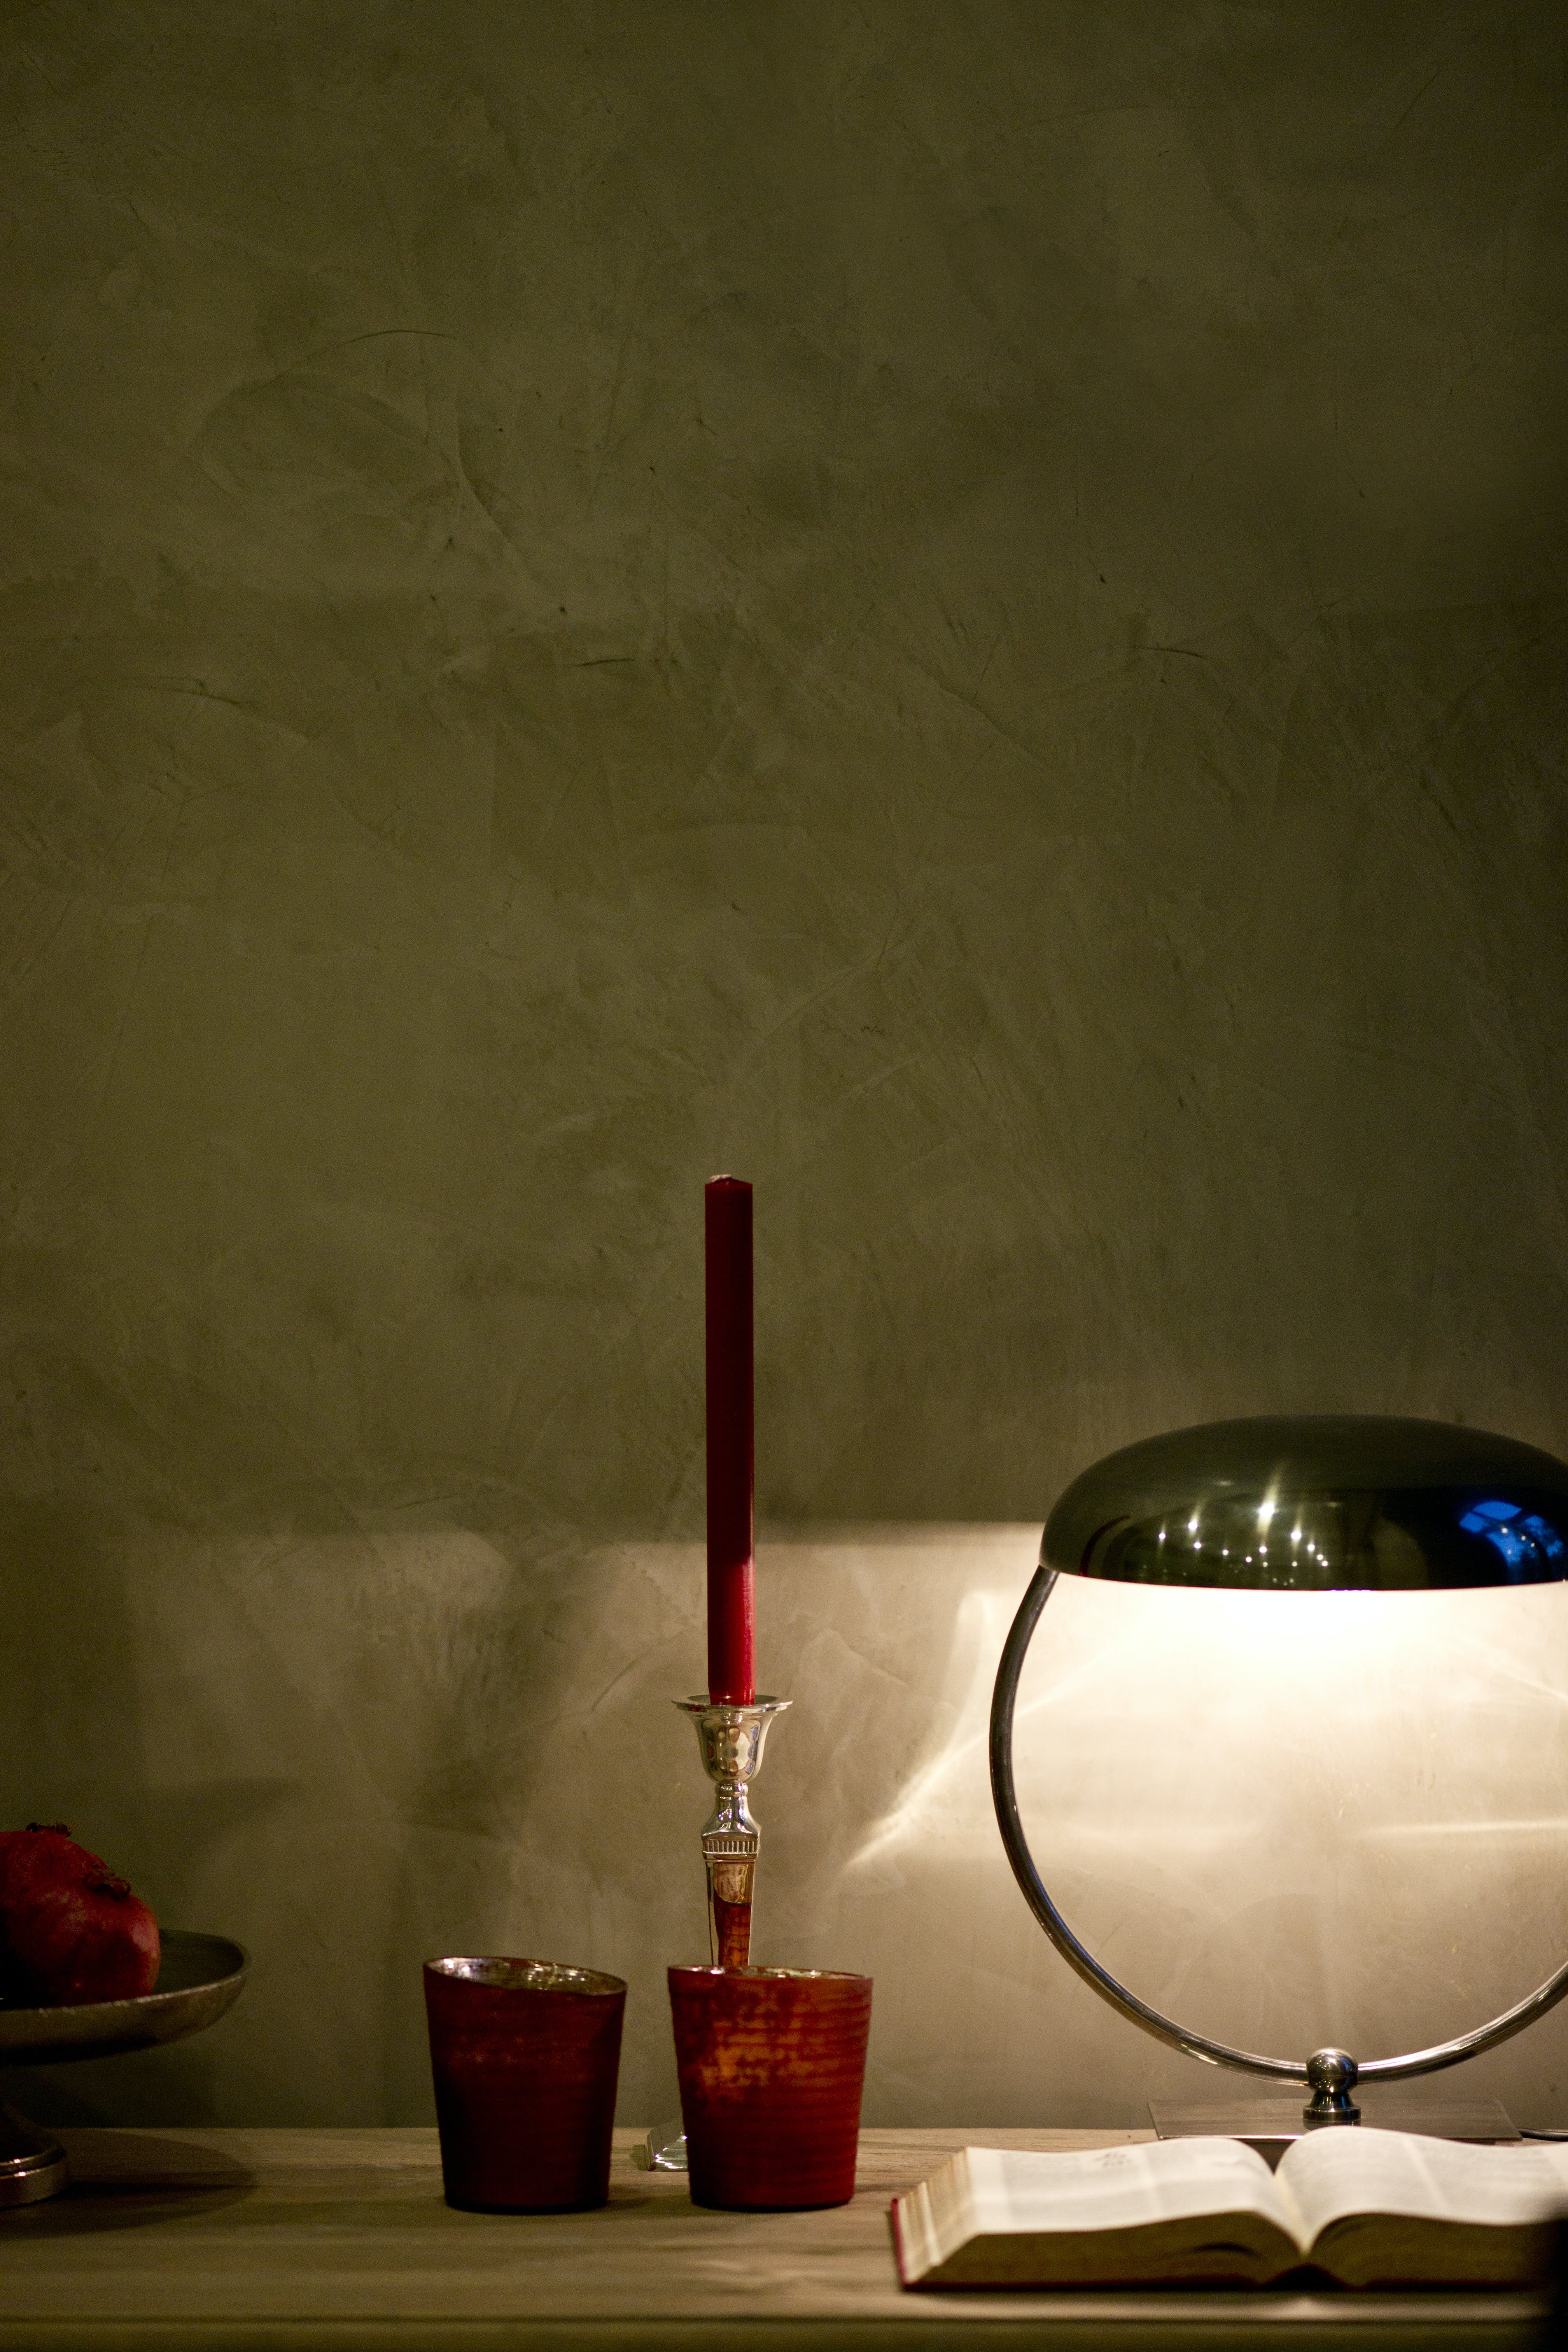 Silver Table Lamp Beside Opened B